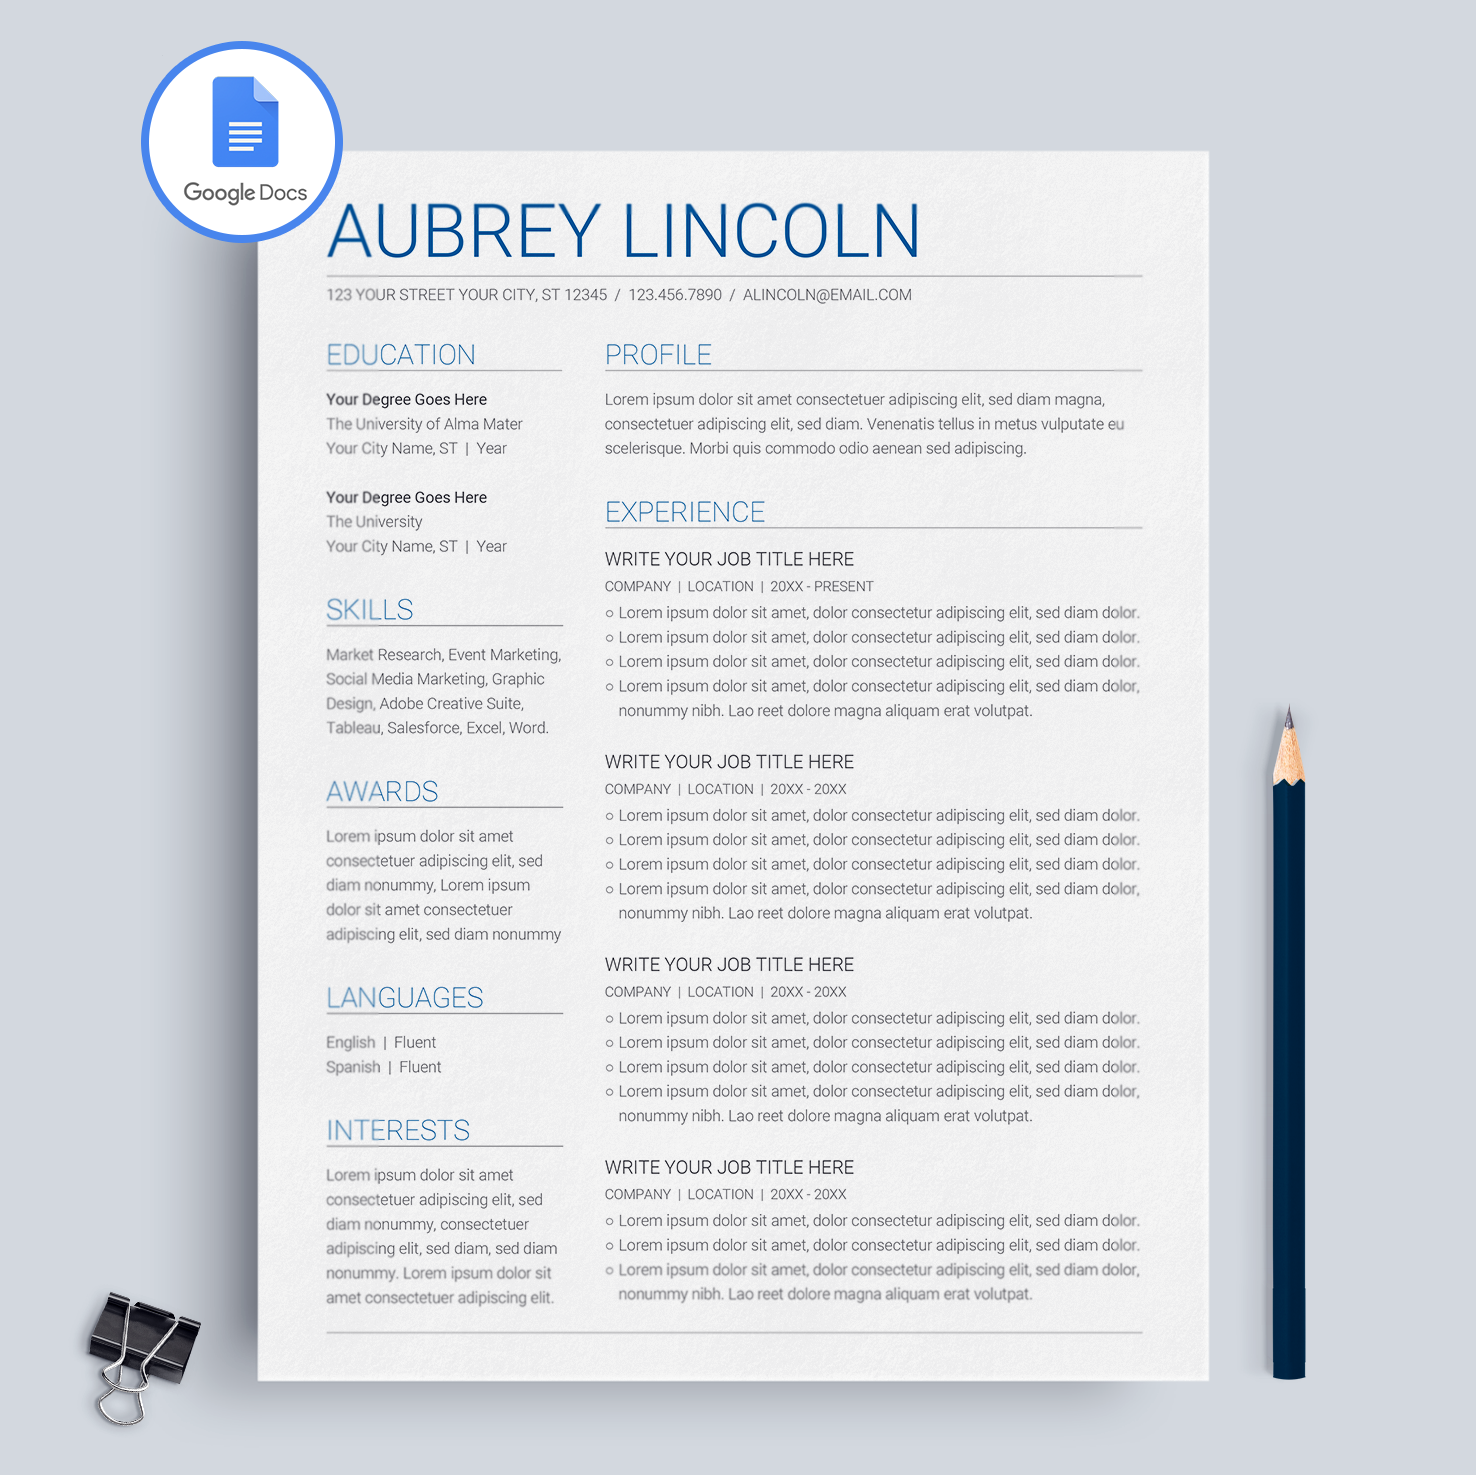 Free Letterhead Templates For Google Docs And Word: Google Docs Resume Template